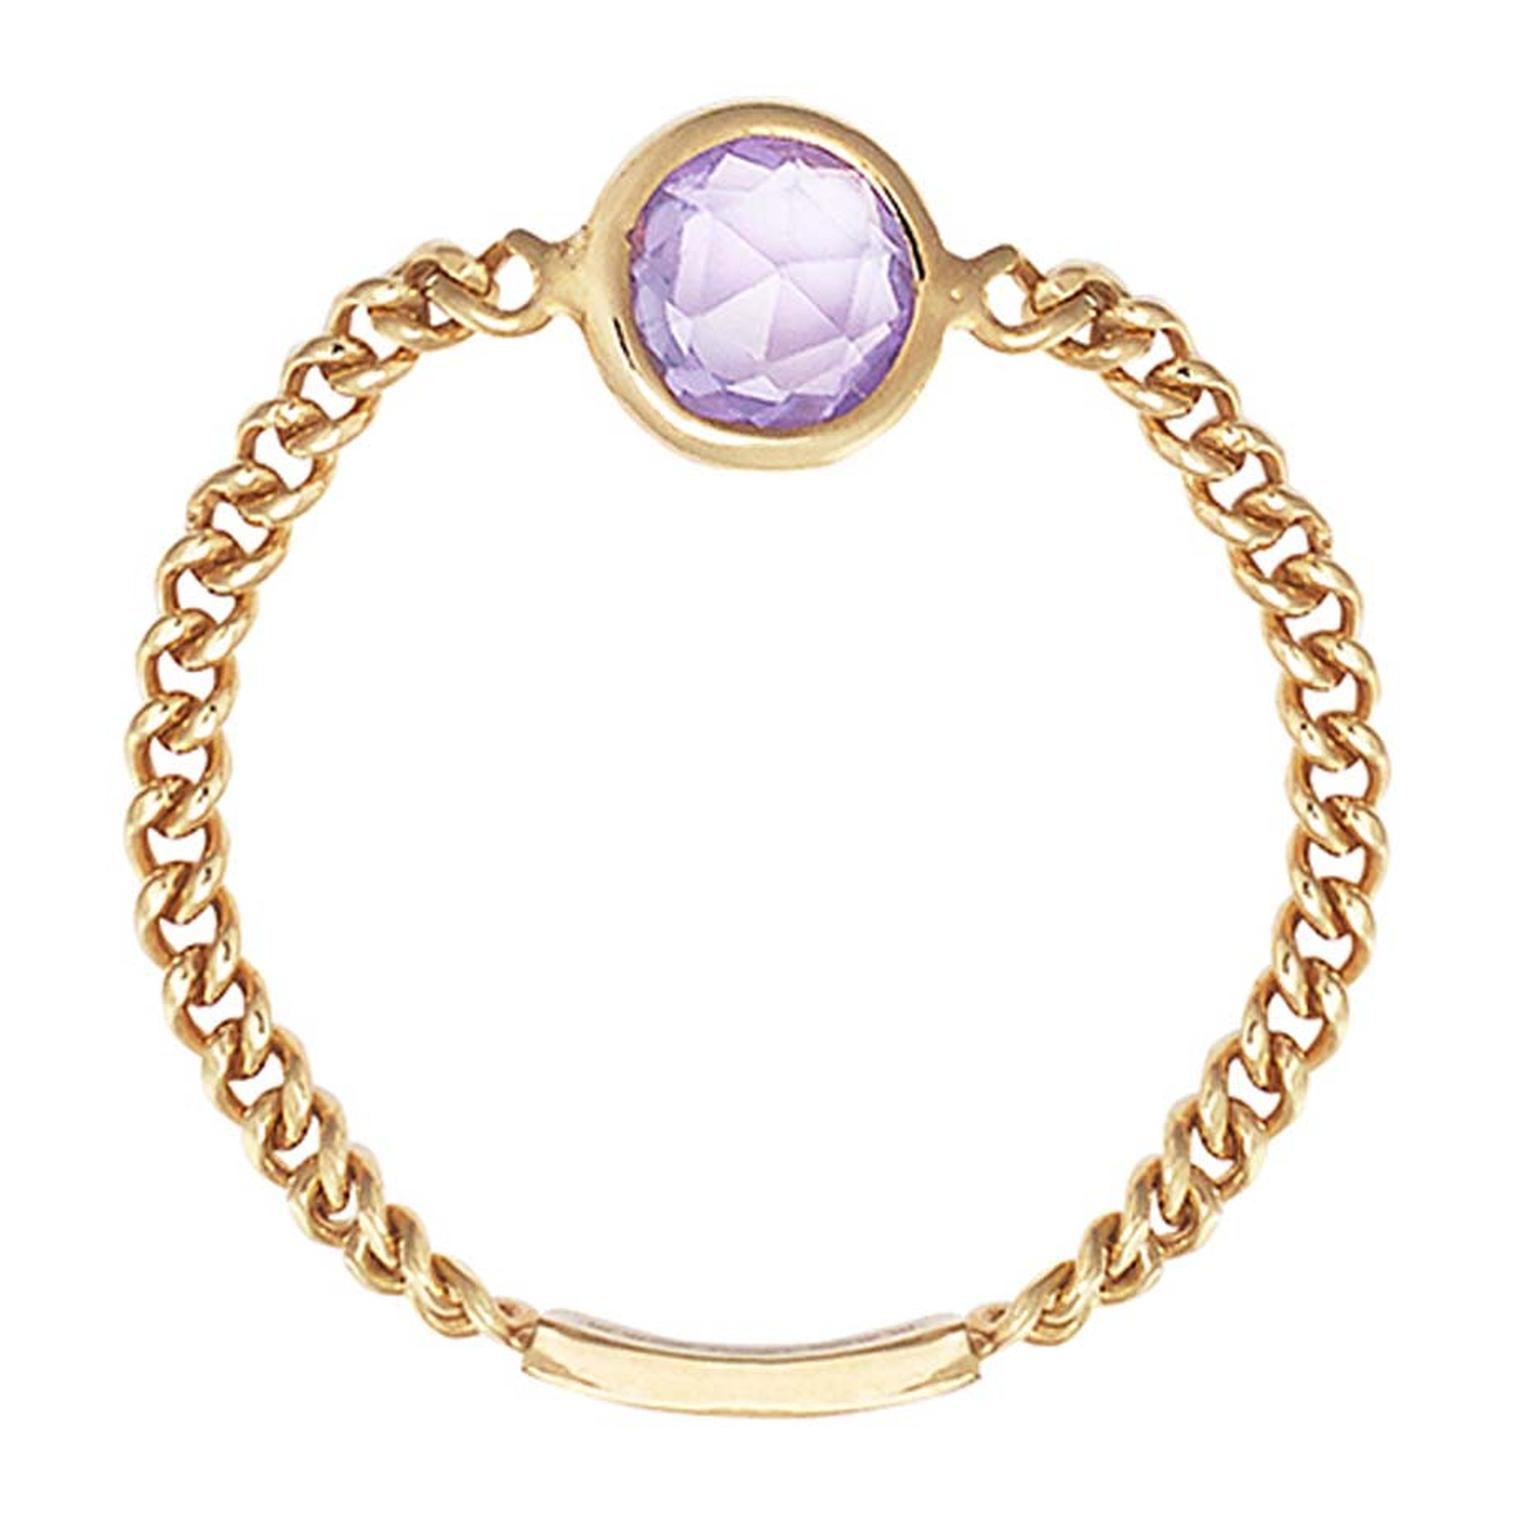 Sweet Pea rose-cut purple sapphire Chain ring in gold.